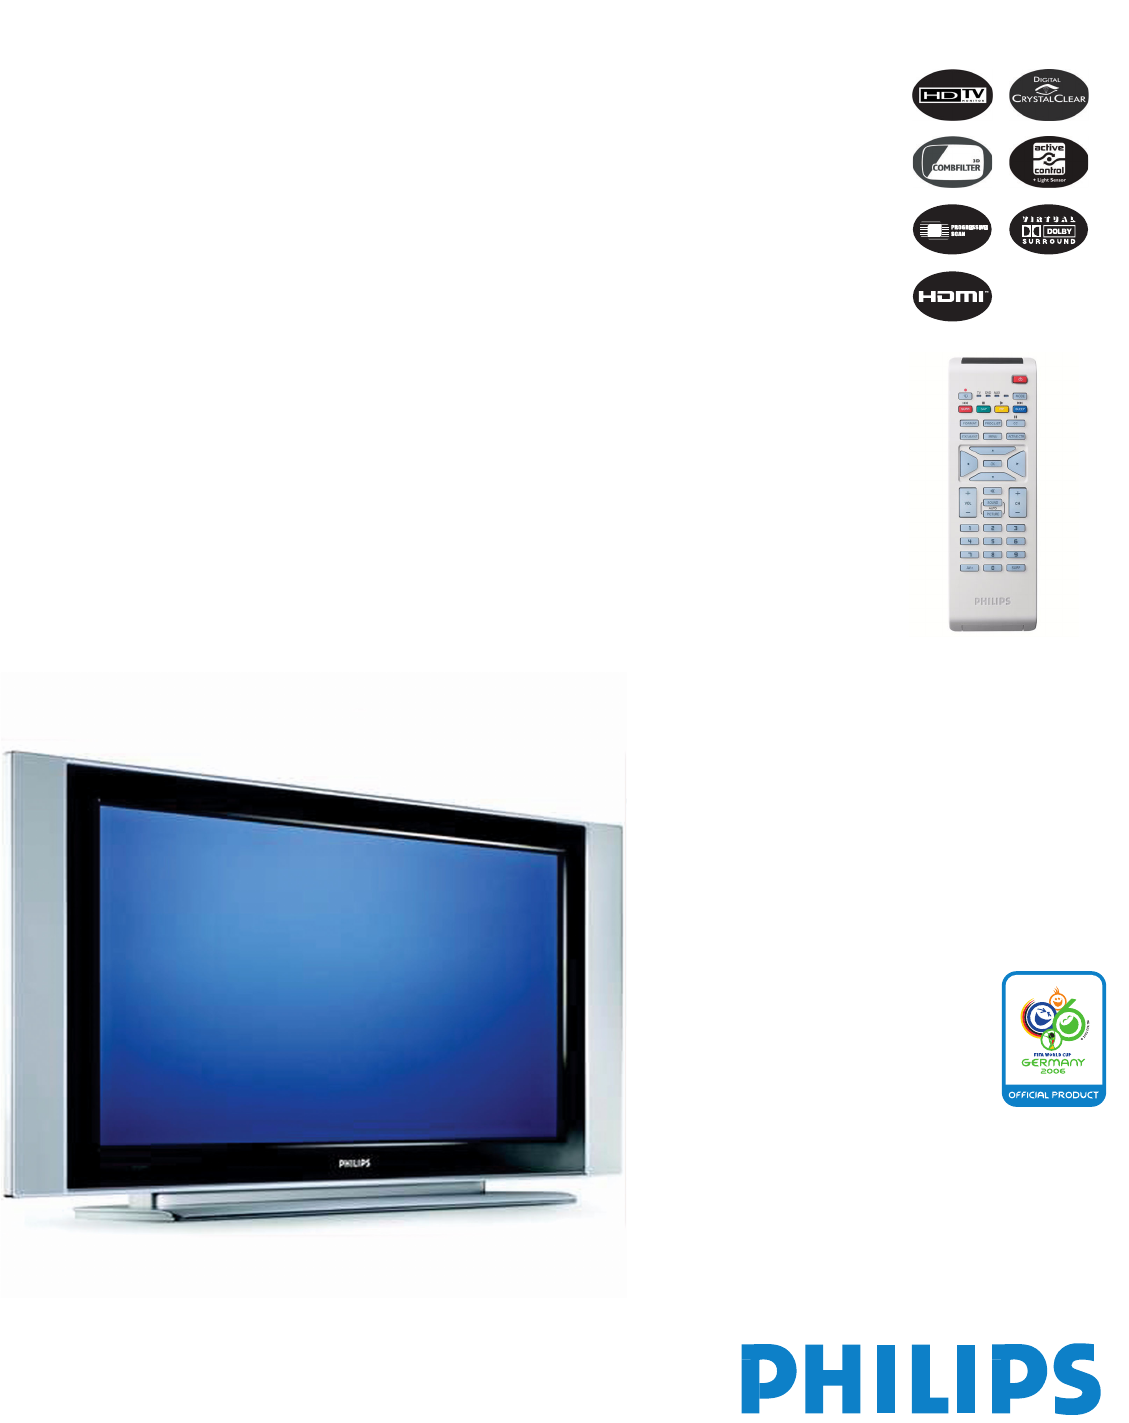 philips flat panel television 32pf5320 user guide manualsonline com rh tv manualsonline com Philips User Guides Speaker Bt7900 Philips Electronics Manuals